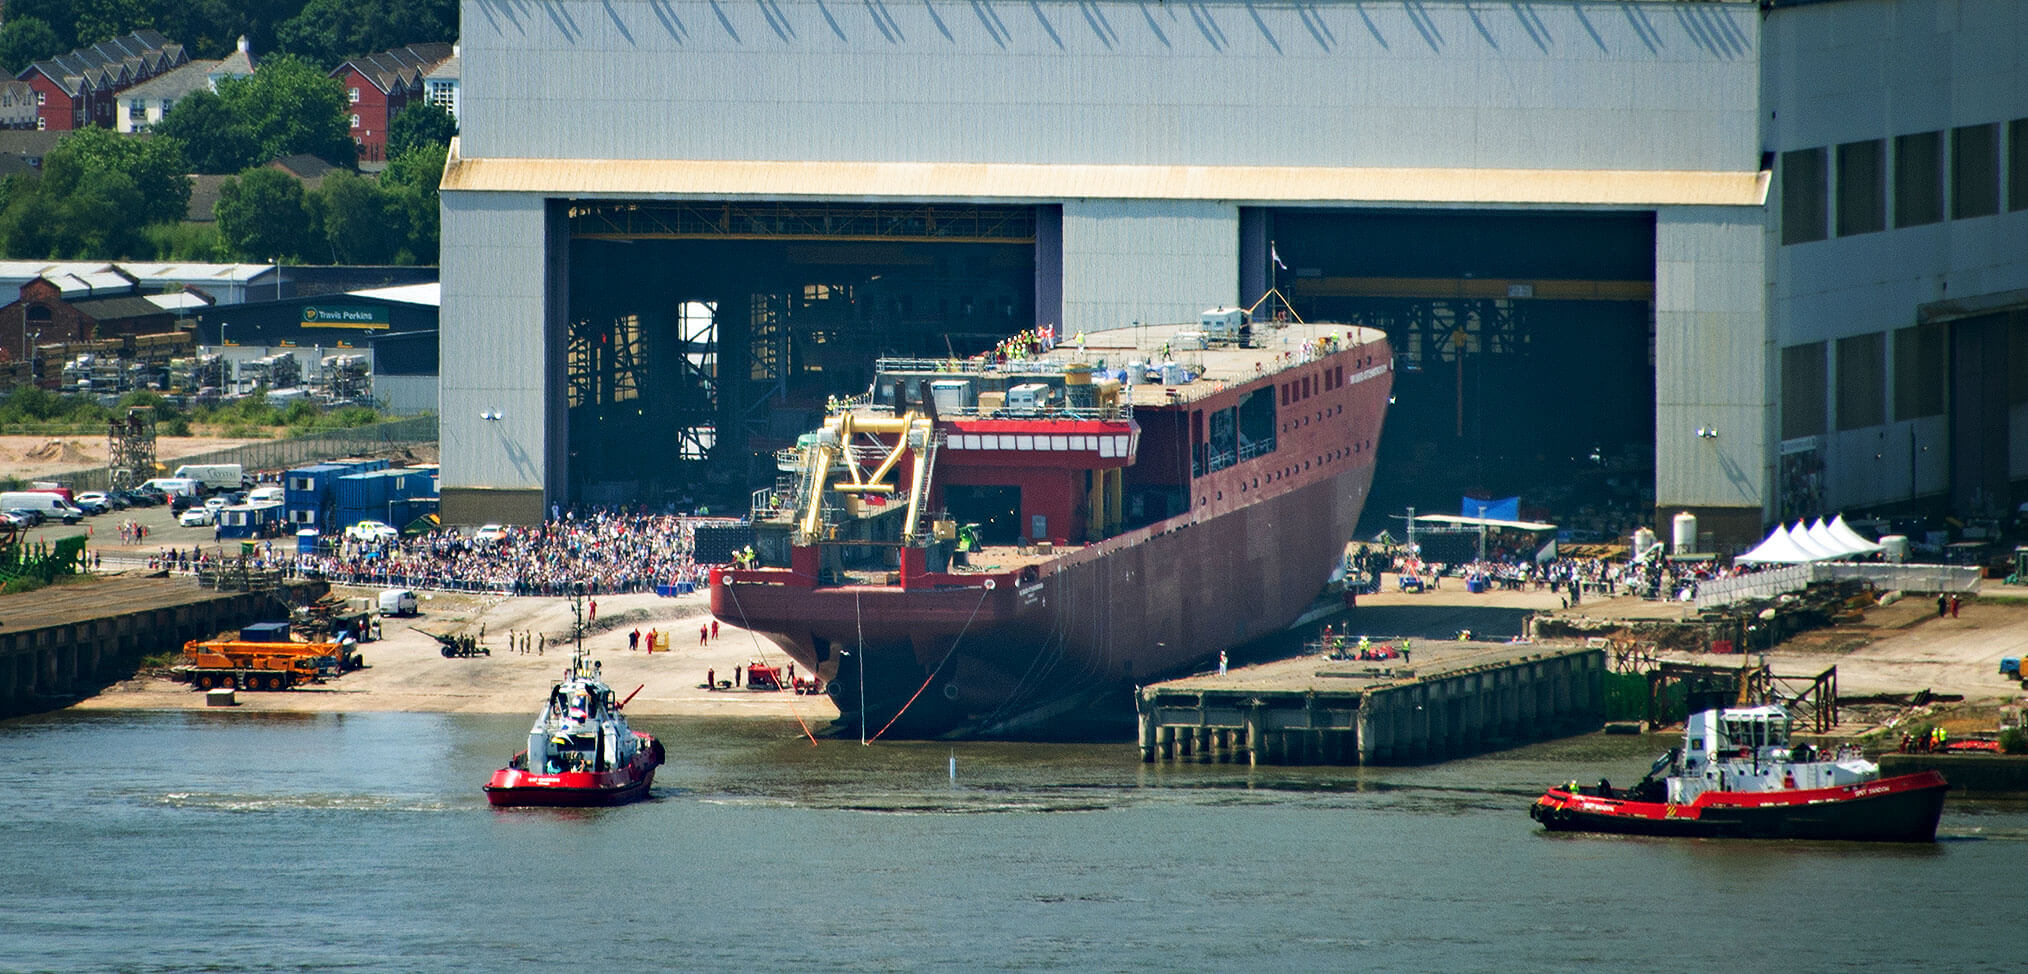 RSS Sir David Attenborough Cammell Laird